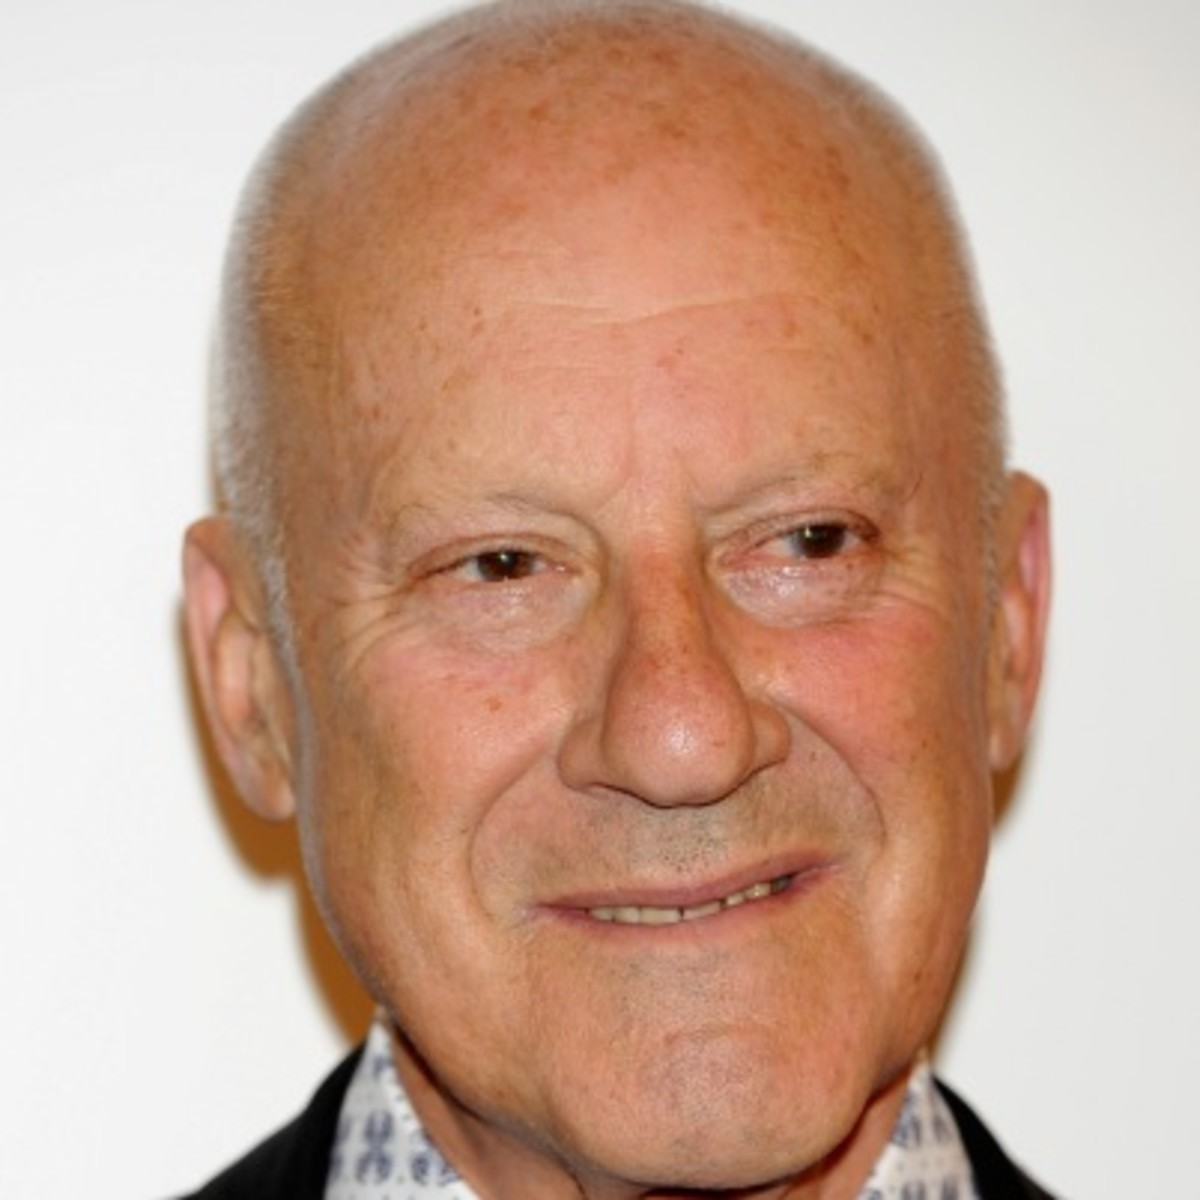 NORMAN FOSTER GAY